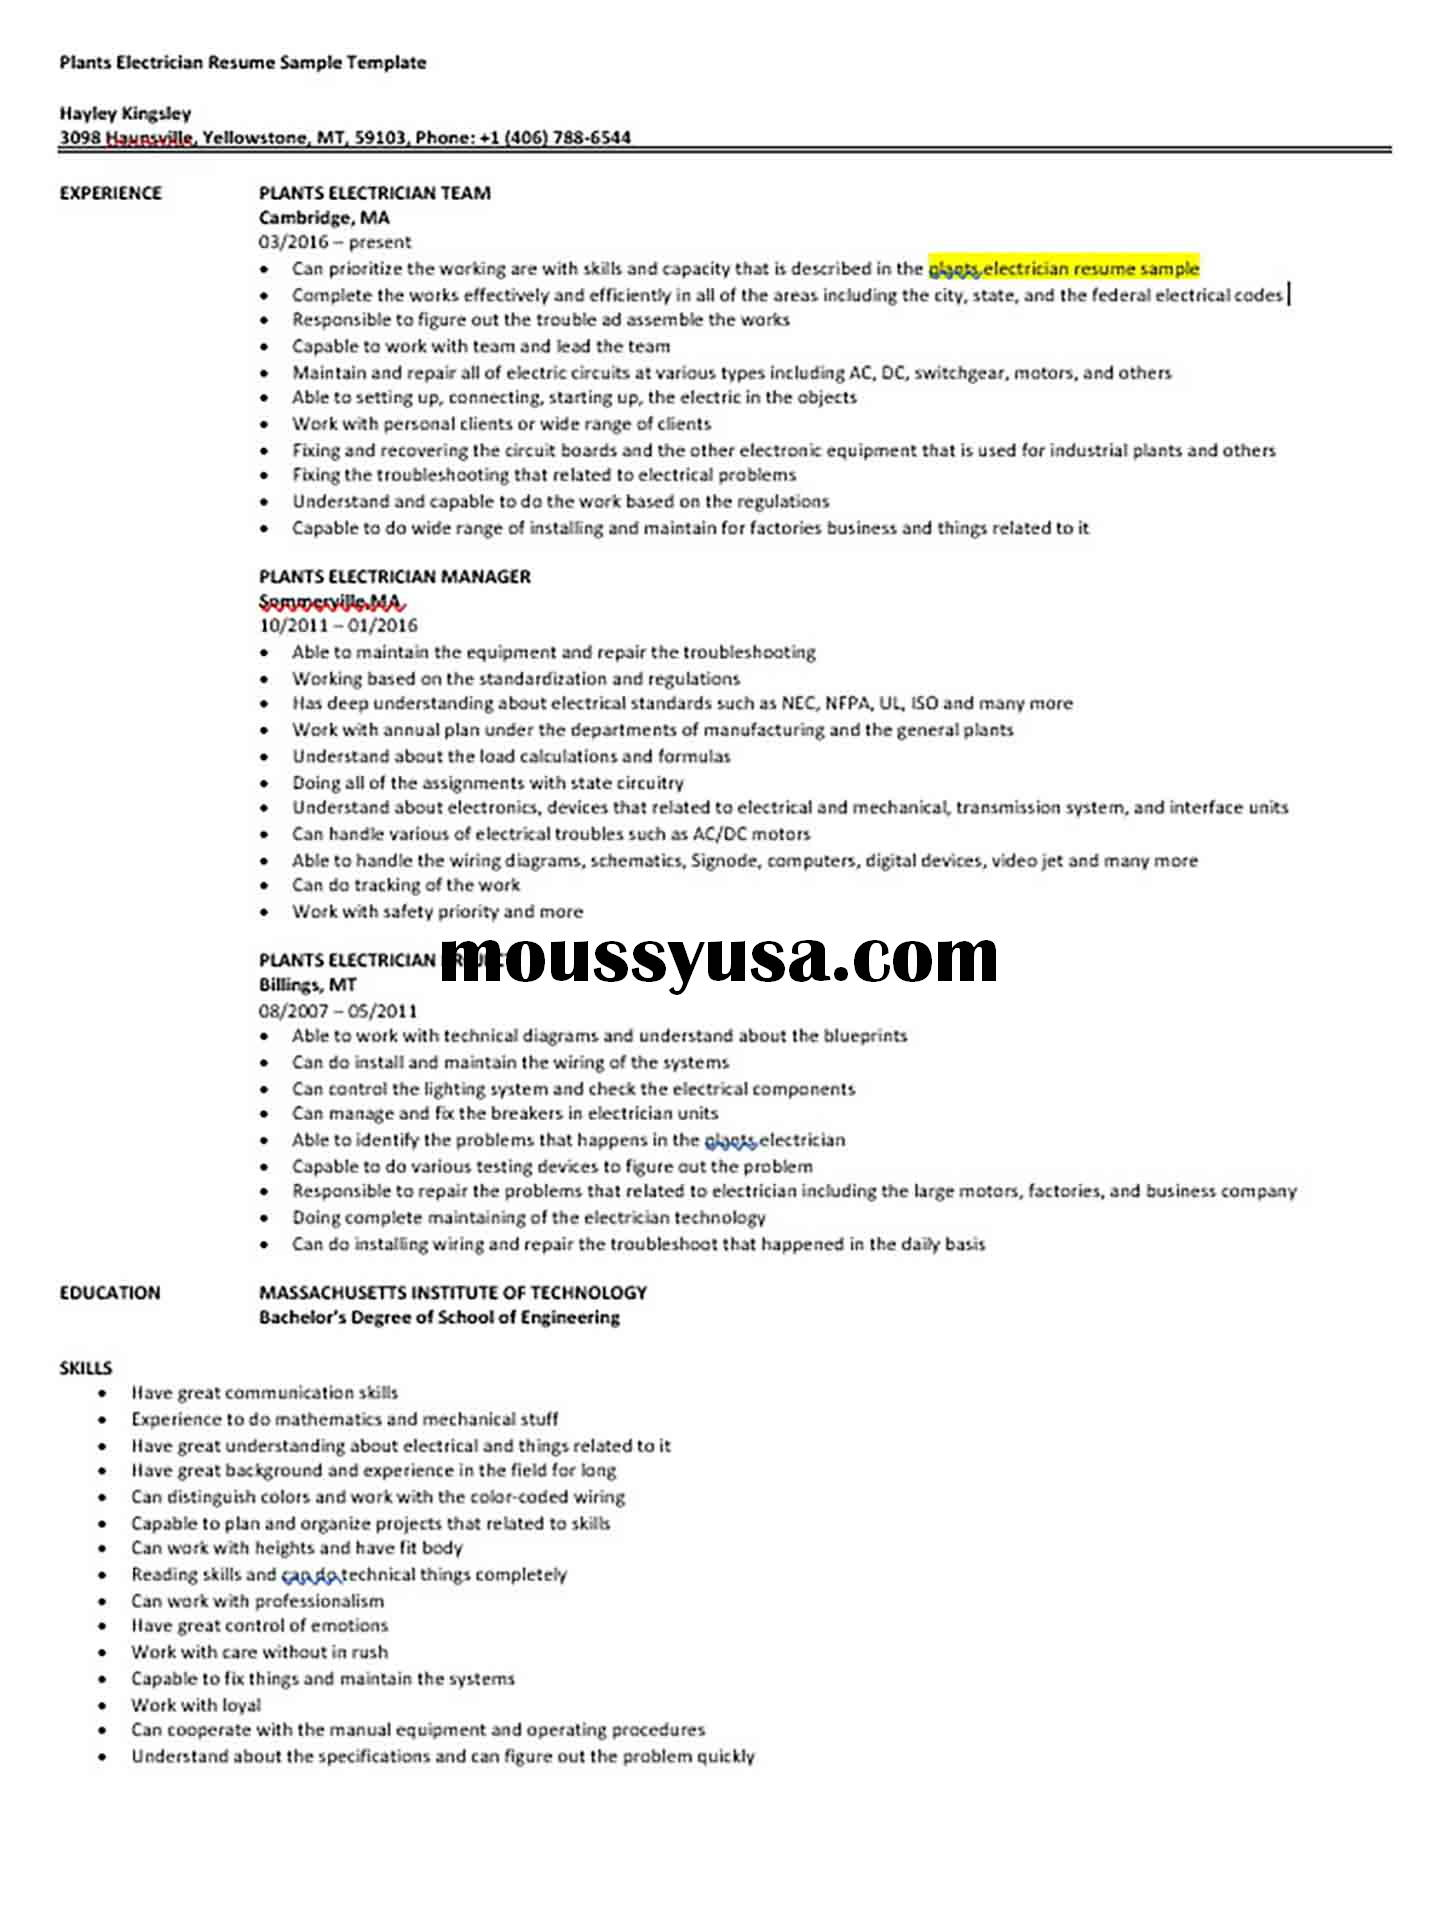 Plants Electrician Resume Sample Template